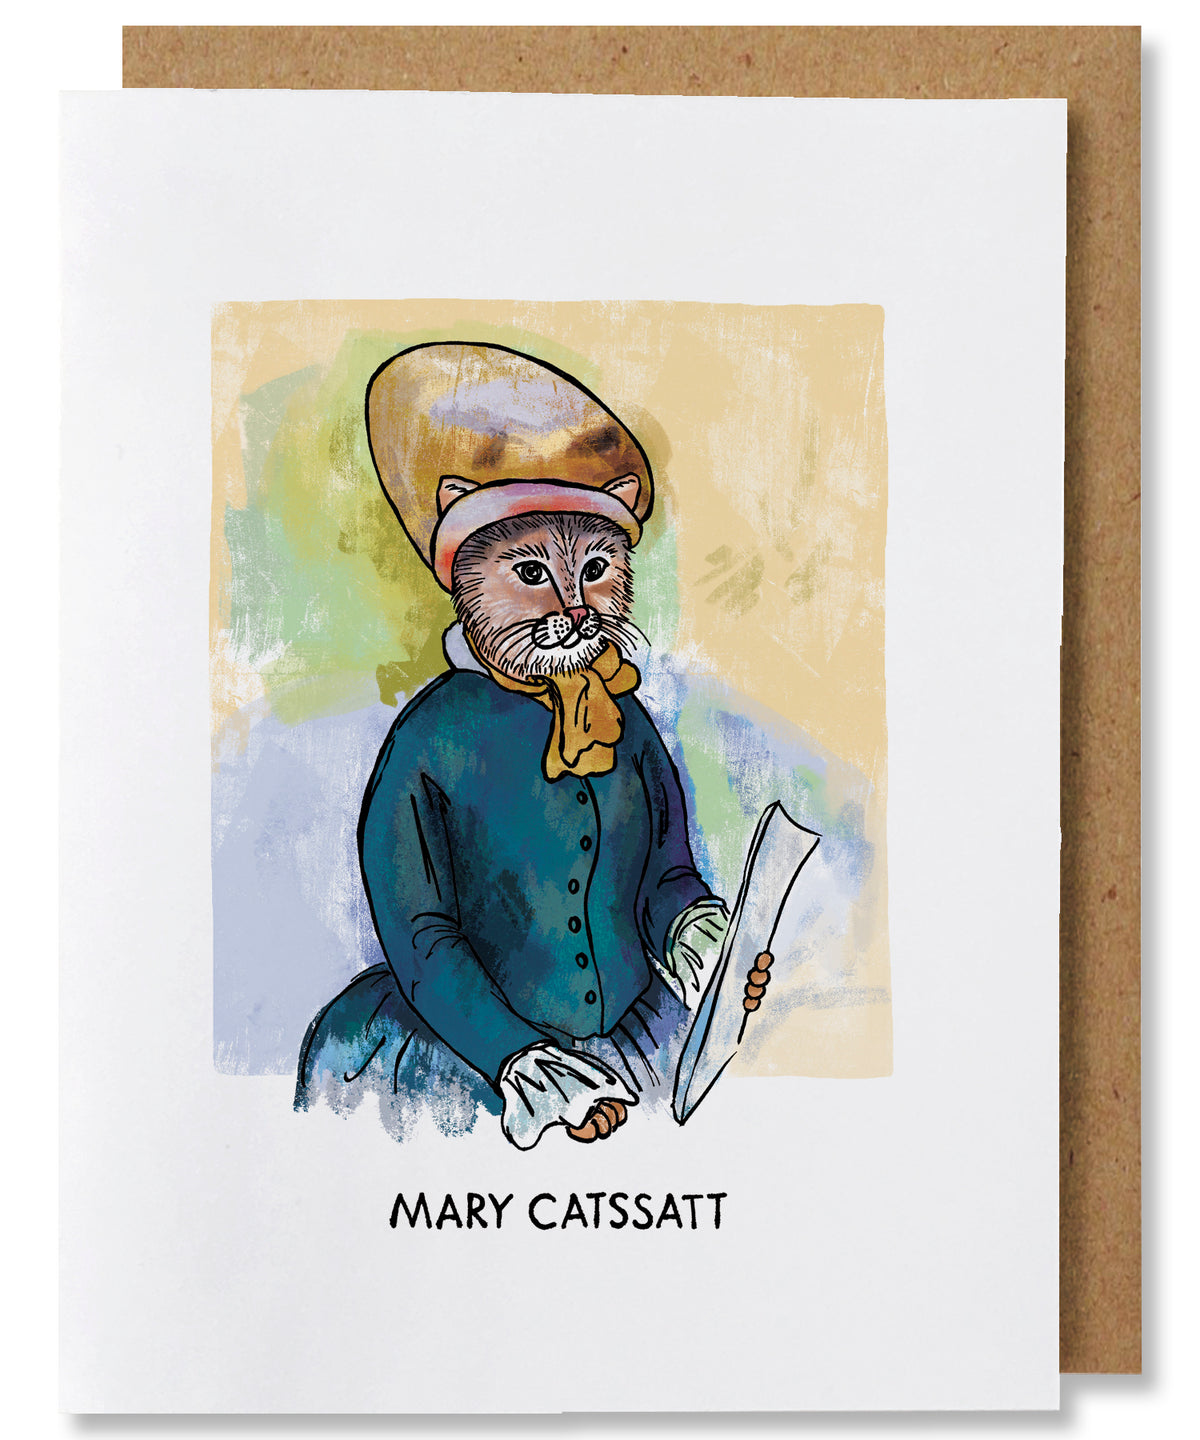 Mary Catsatt Greeting Card - Heart of the Home PA